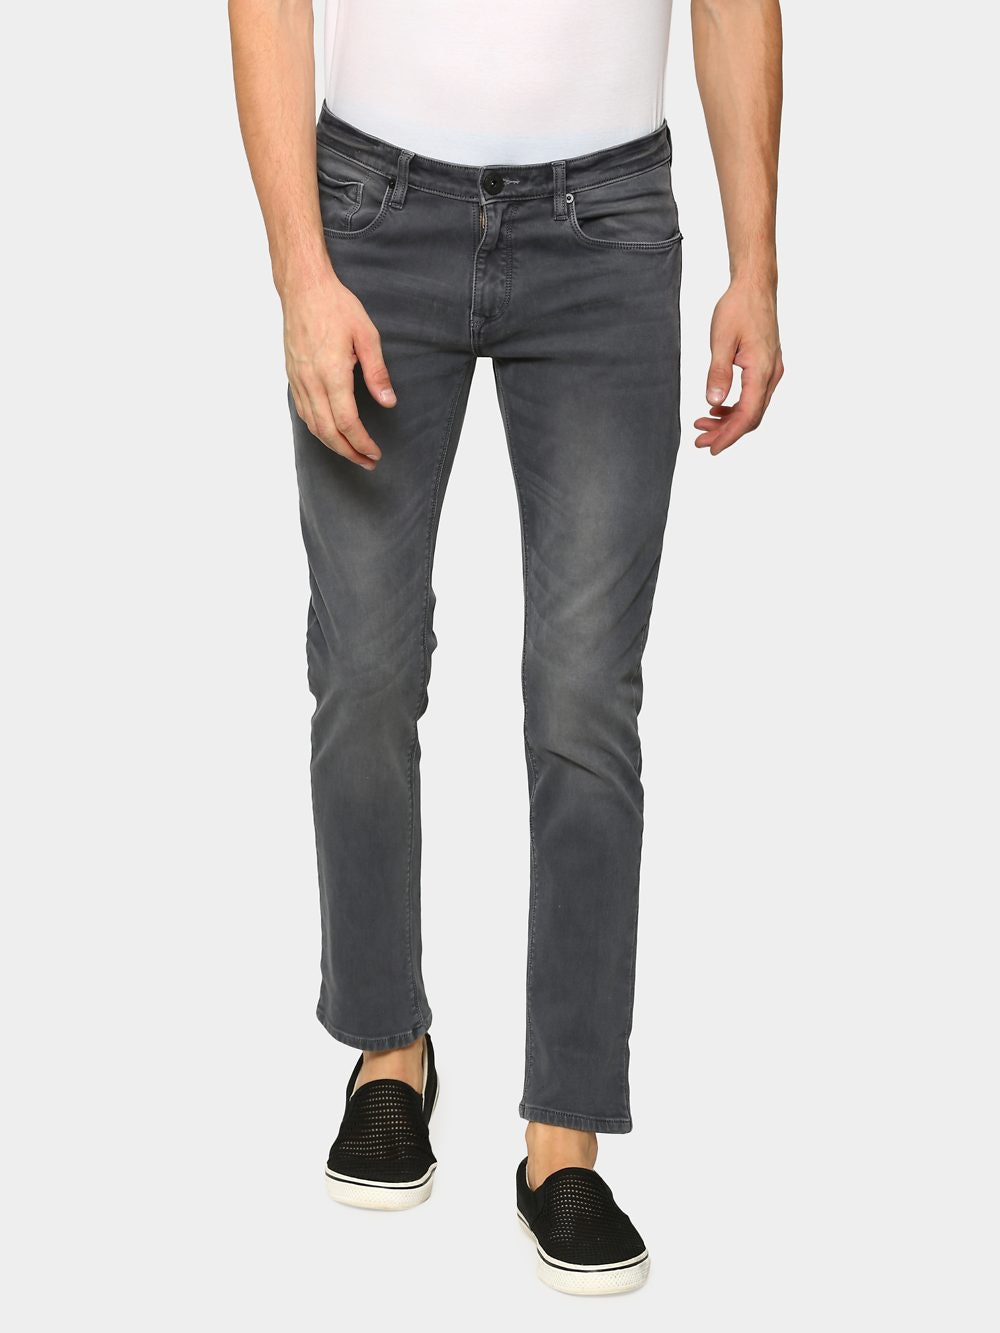 530dace6c1ed abof Jeans, abof Men Grey Cloud Wash Slim Fit Jeans for Men at ABOF